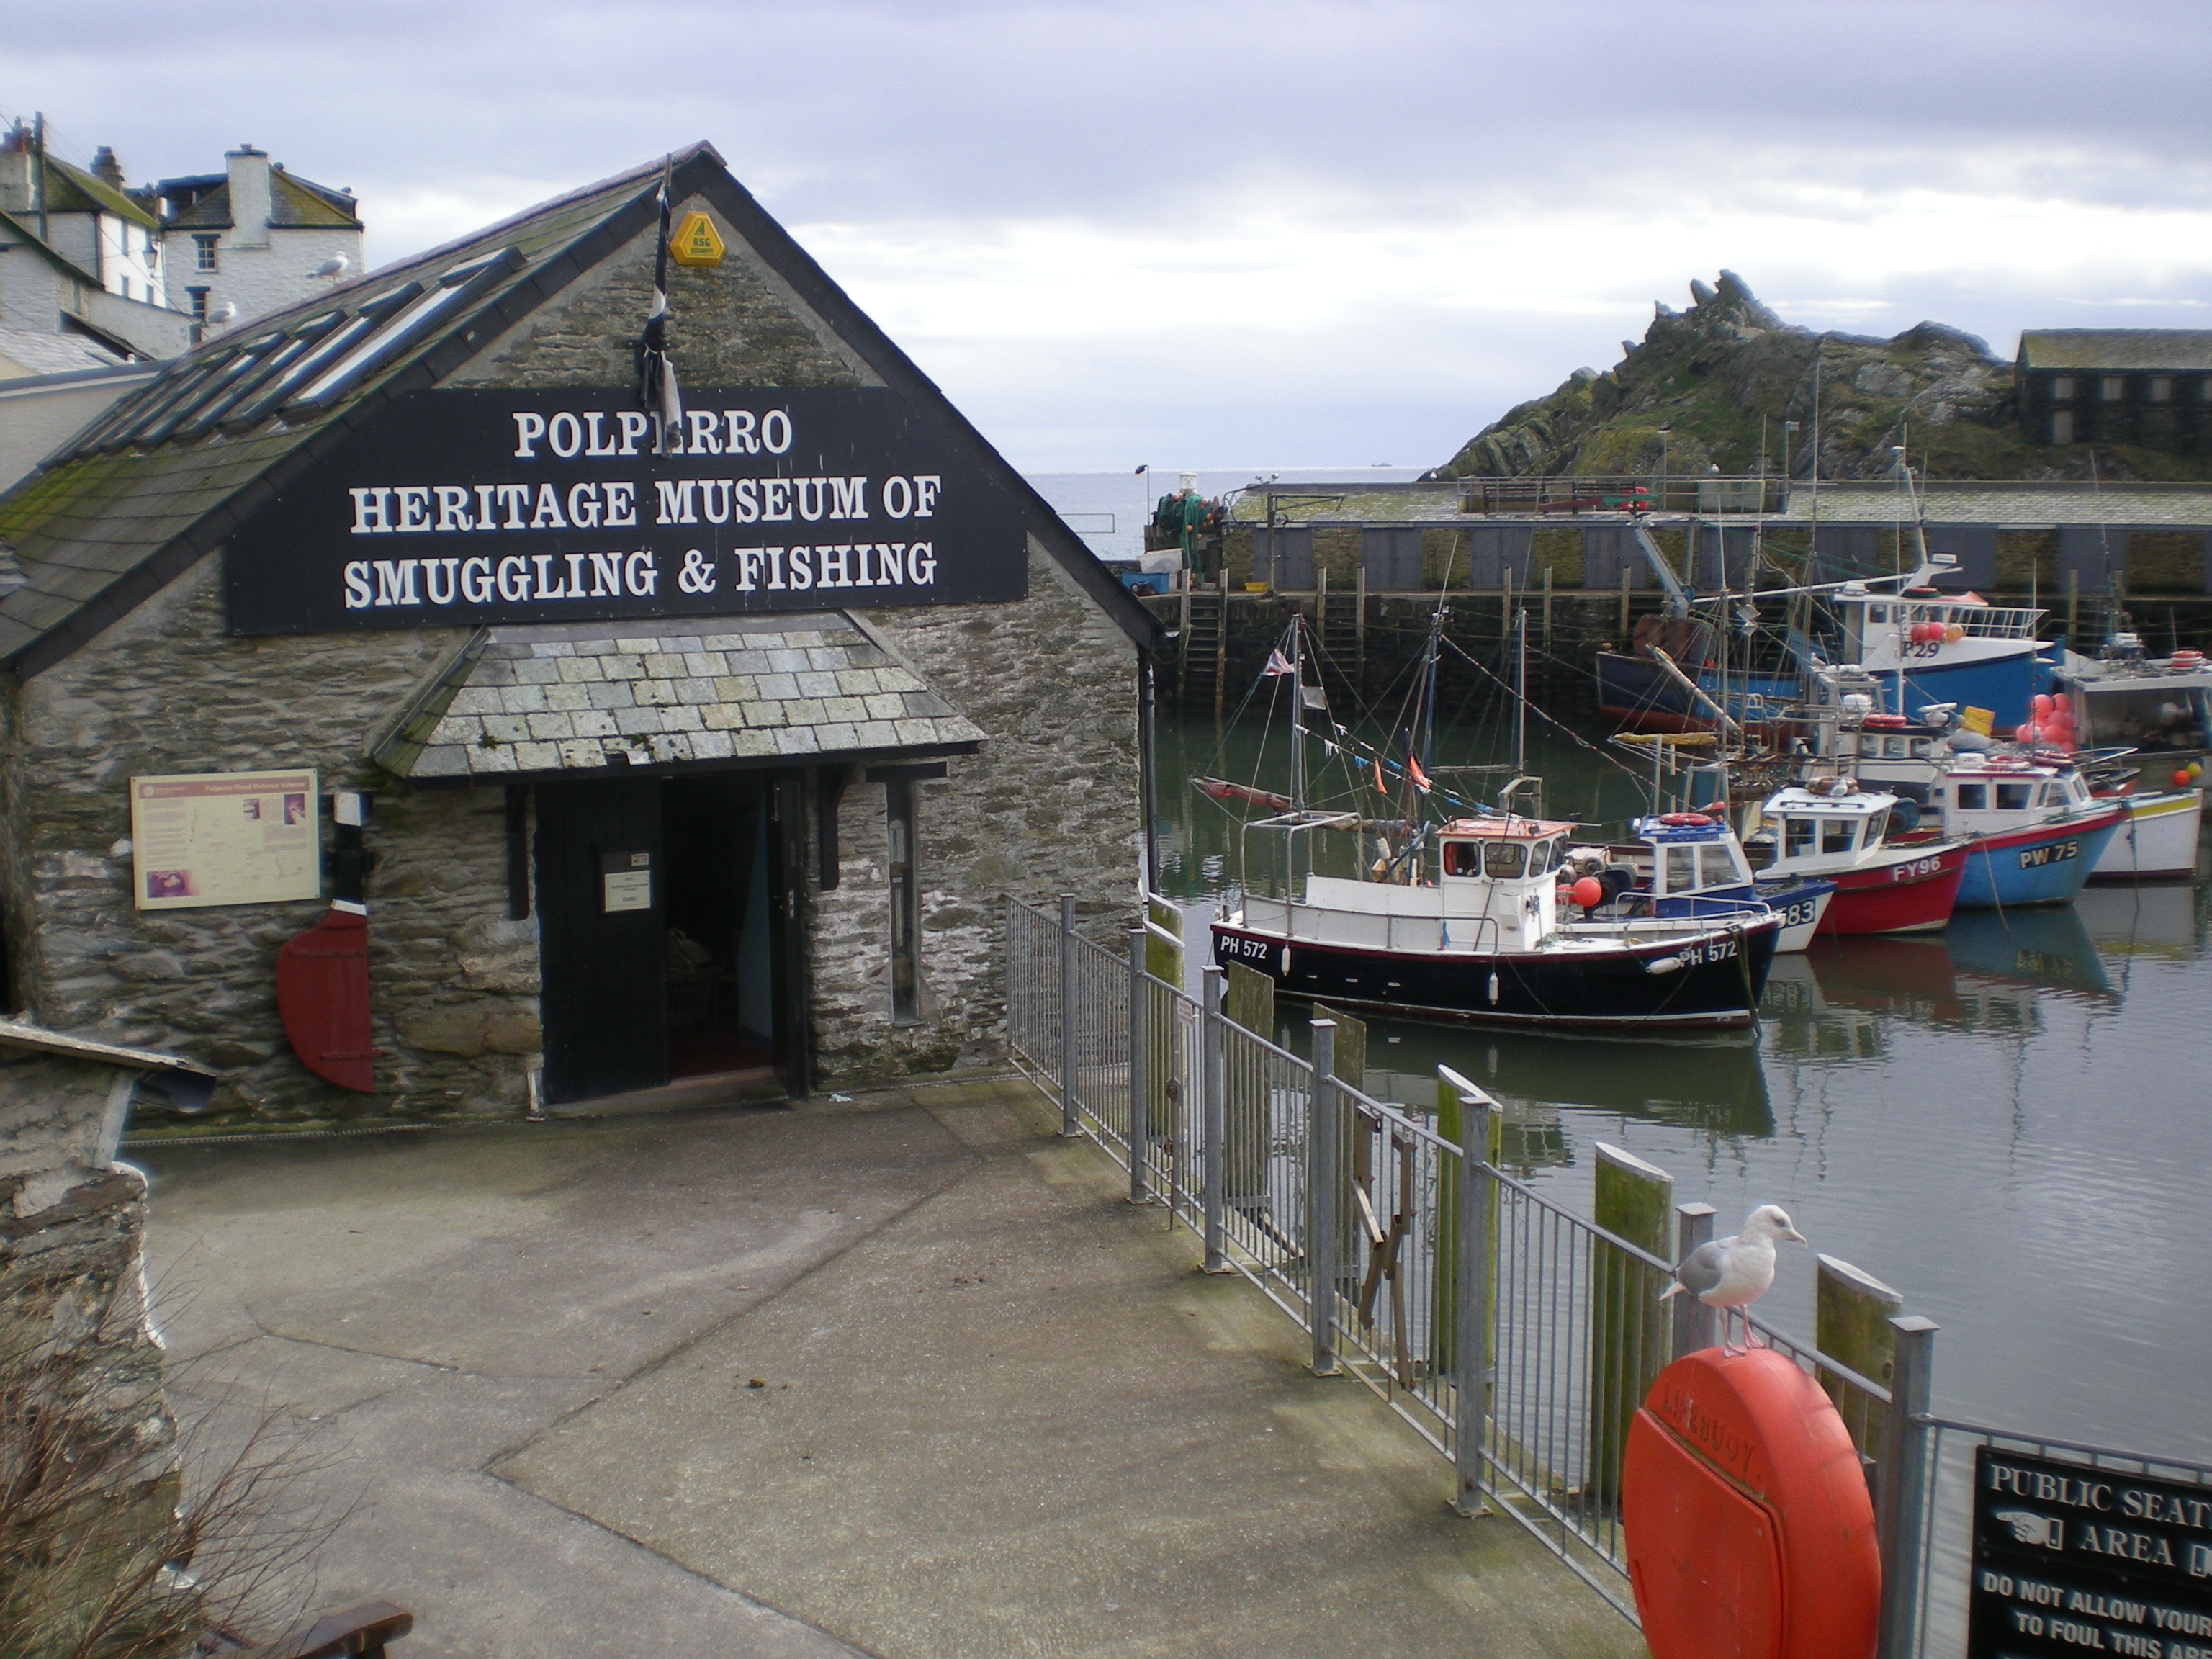 Polperro Heritage Museum of Smuggling & Fishing